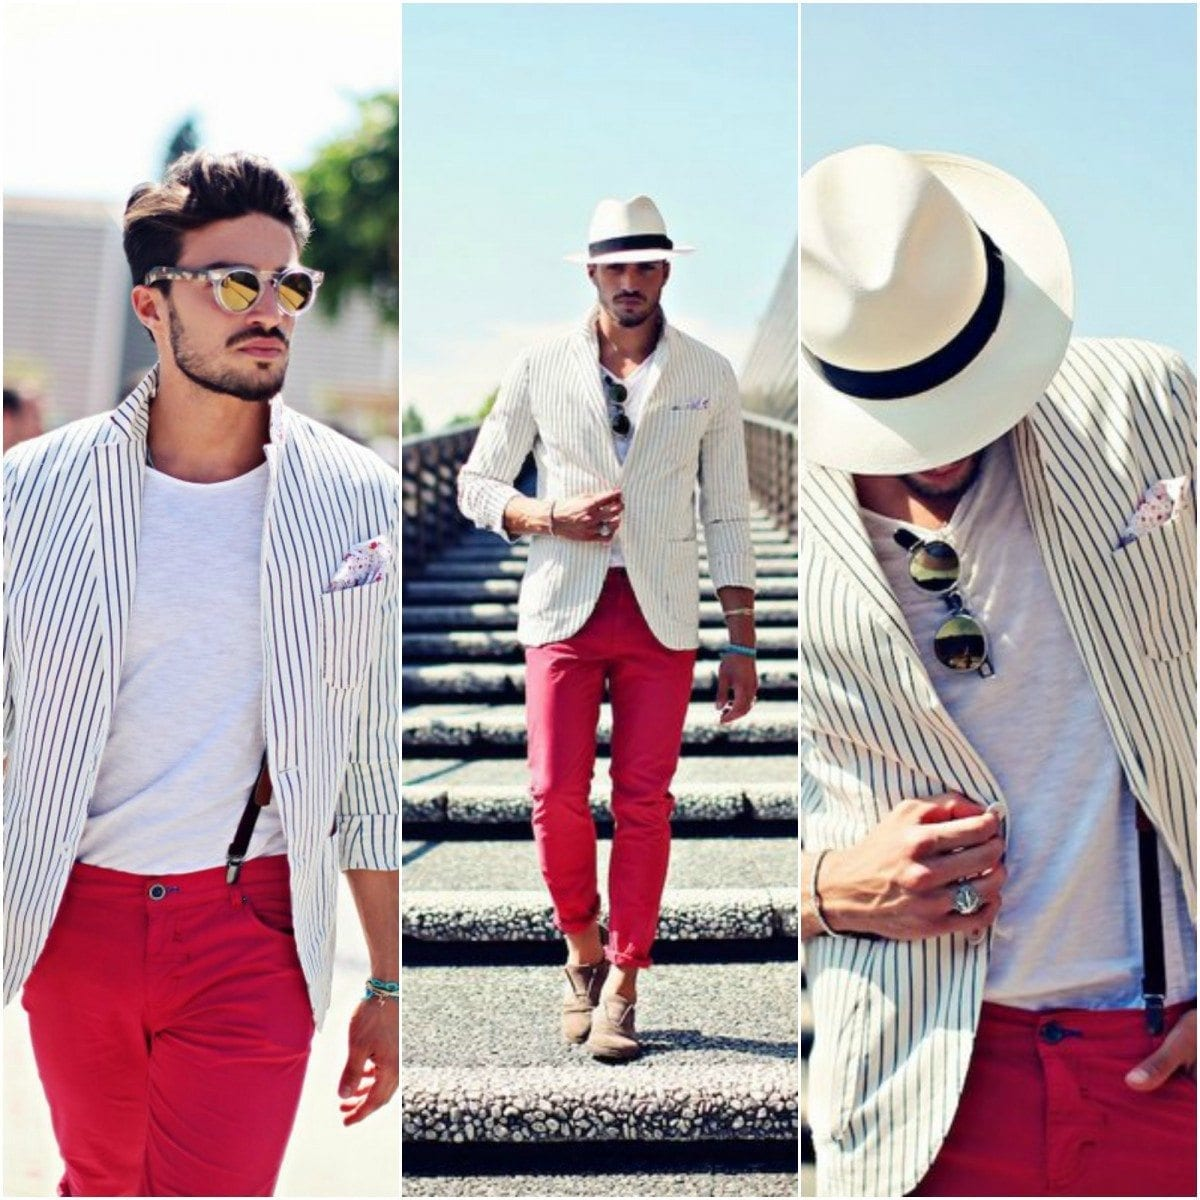 Cool-Partywear 30 Funky Outfits for Guys Trending These Days